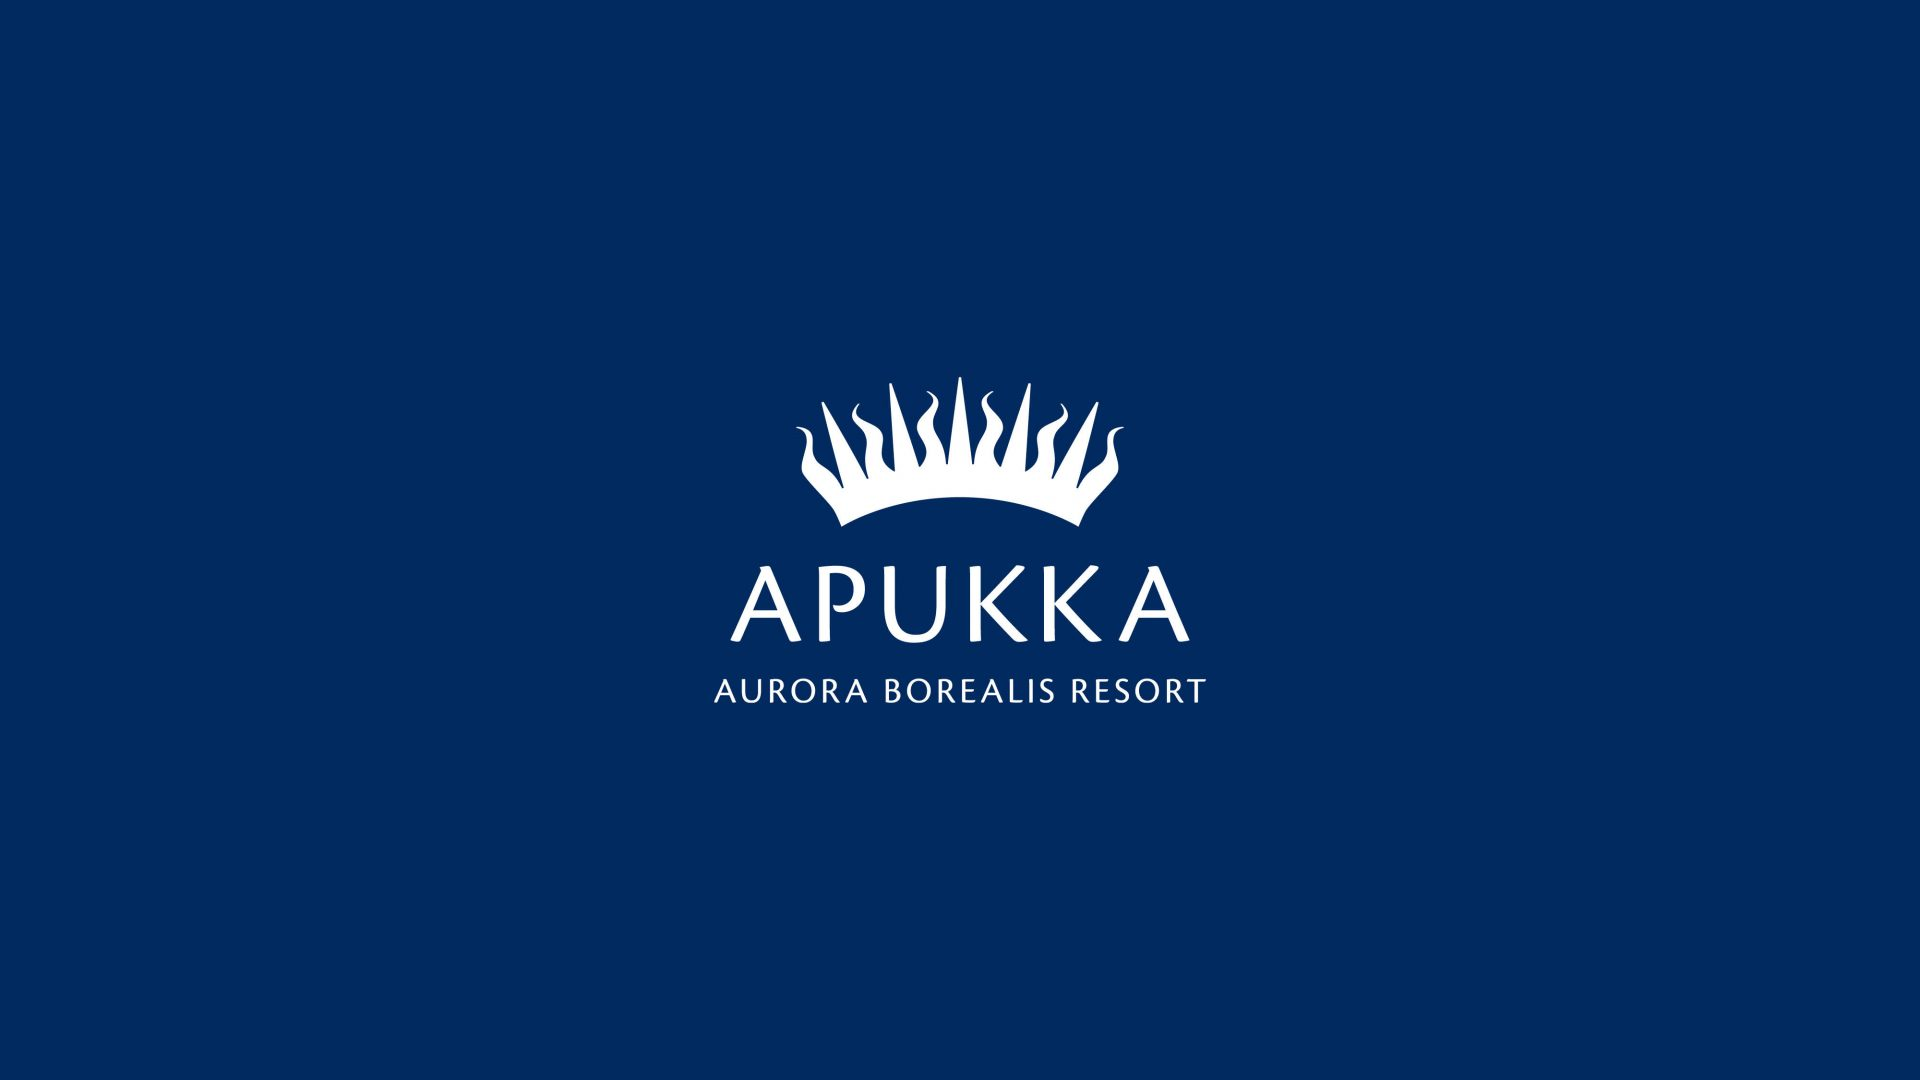 Apukka Resort